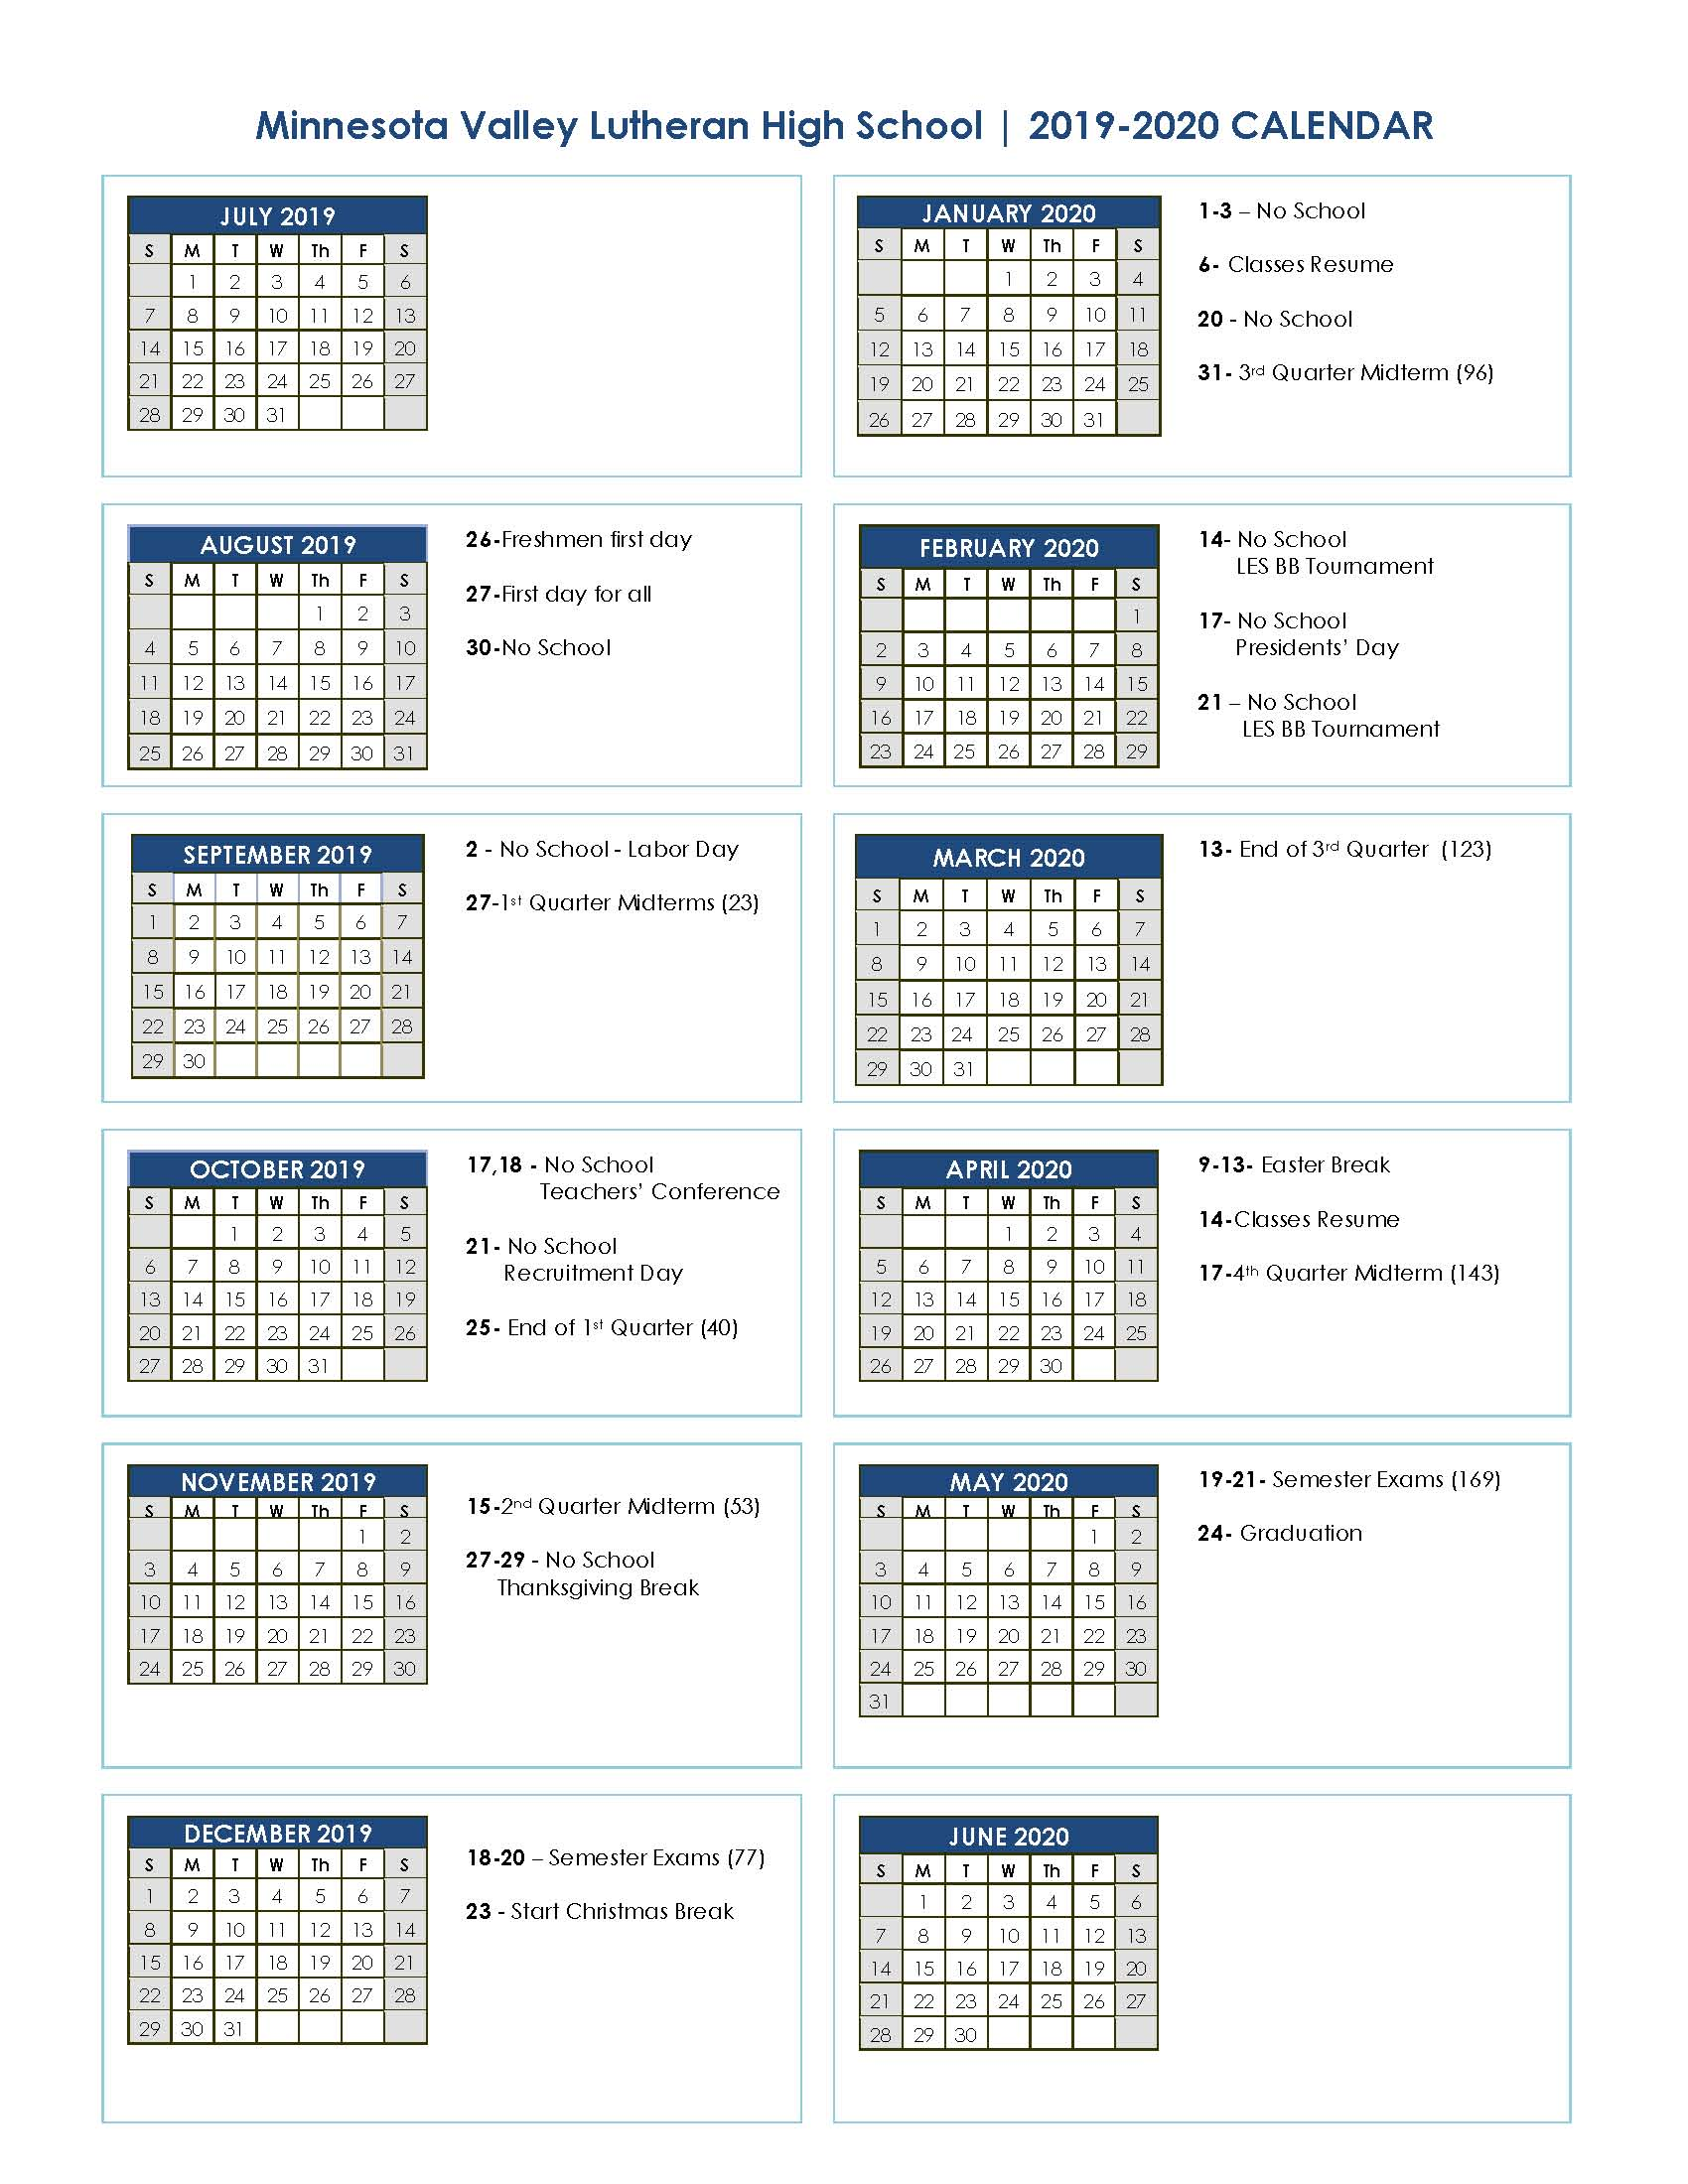 Lutheran Calendar 2019 Academic Calendar 2019 2020 | Minnesota Valley Lutheran High School